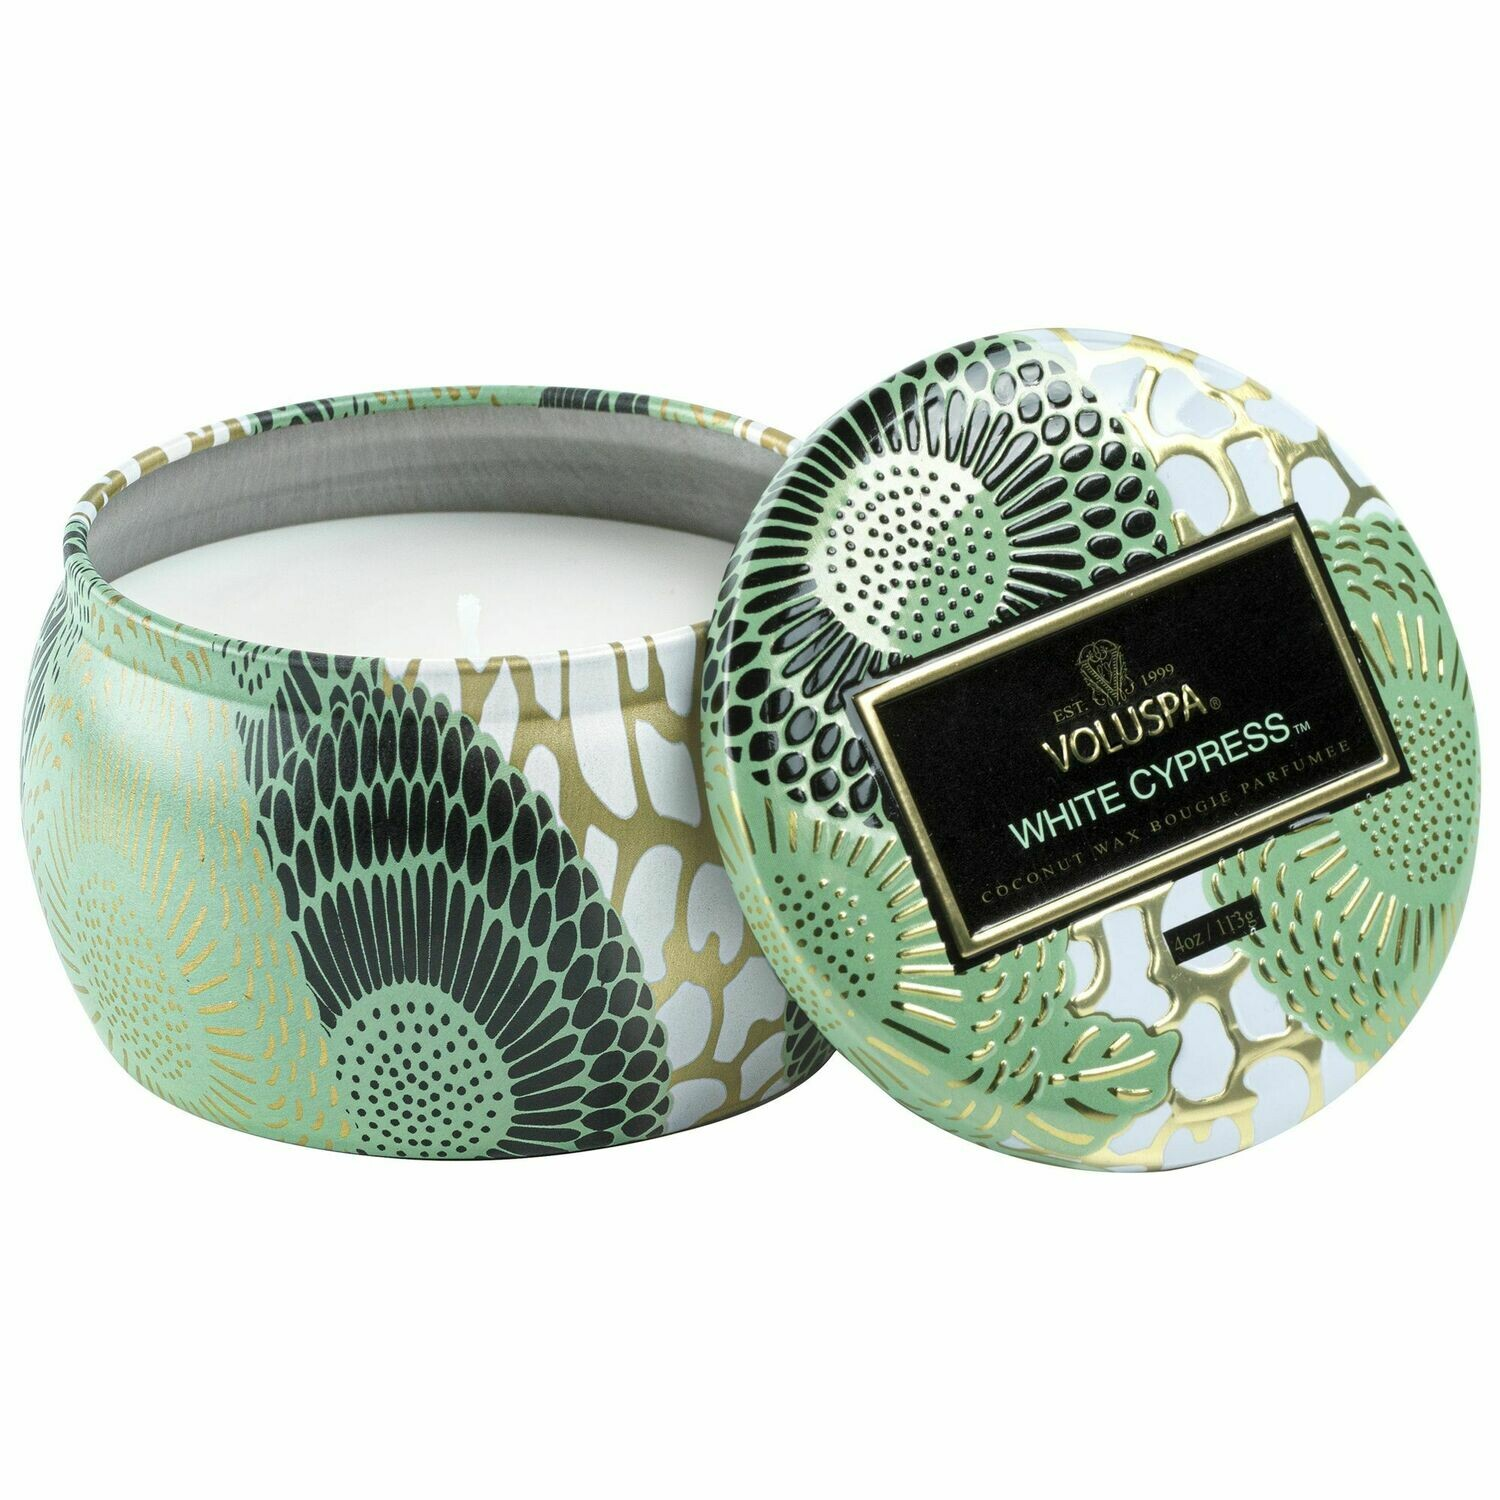 White Cypress Candle - Voluspa Petite Tin Candle